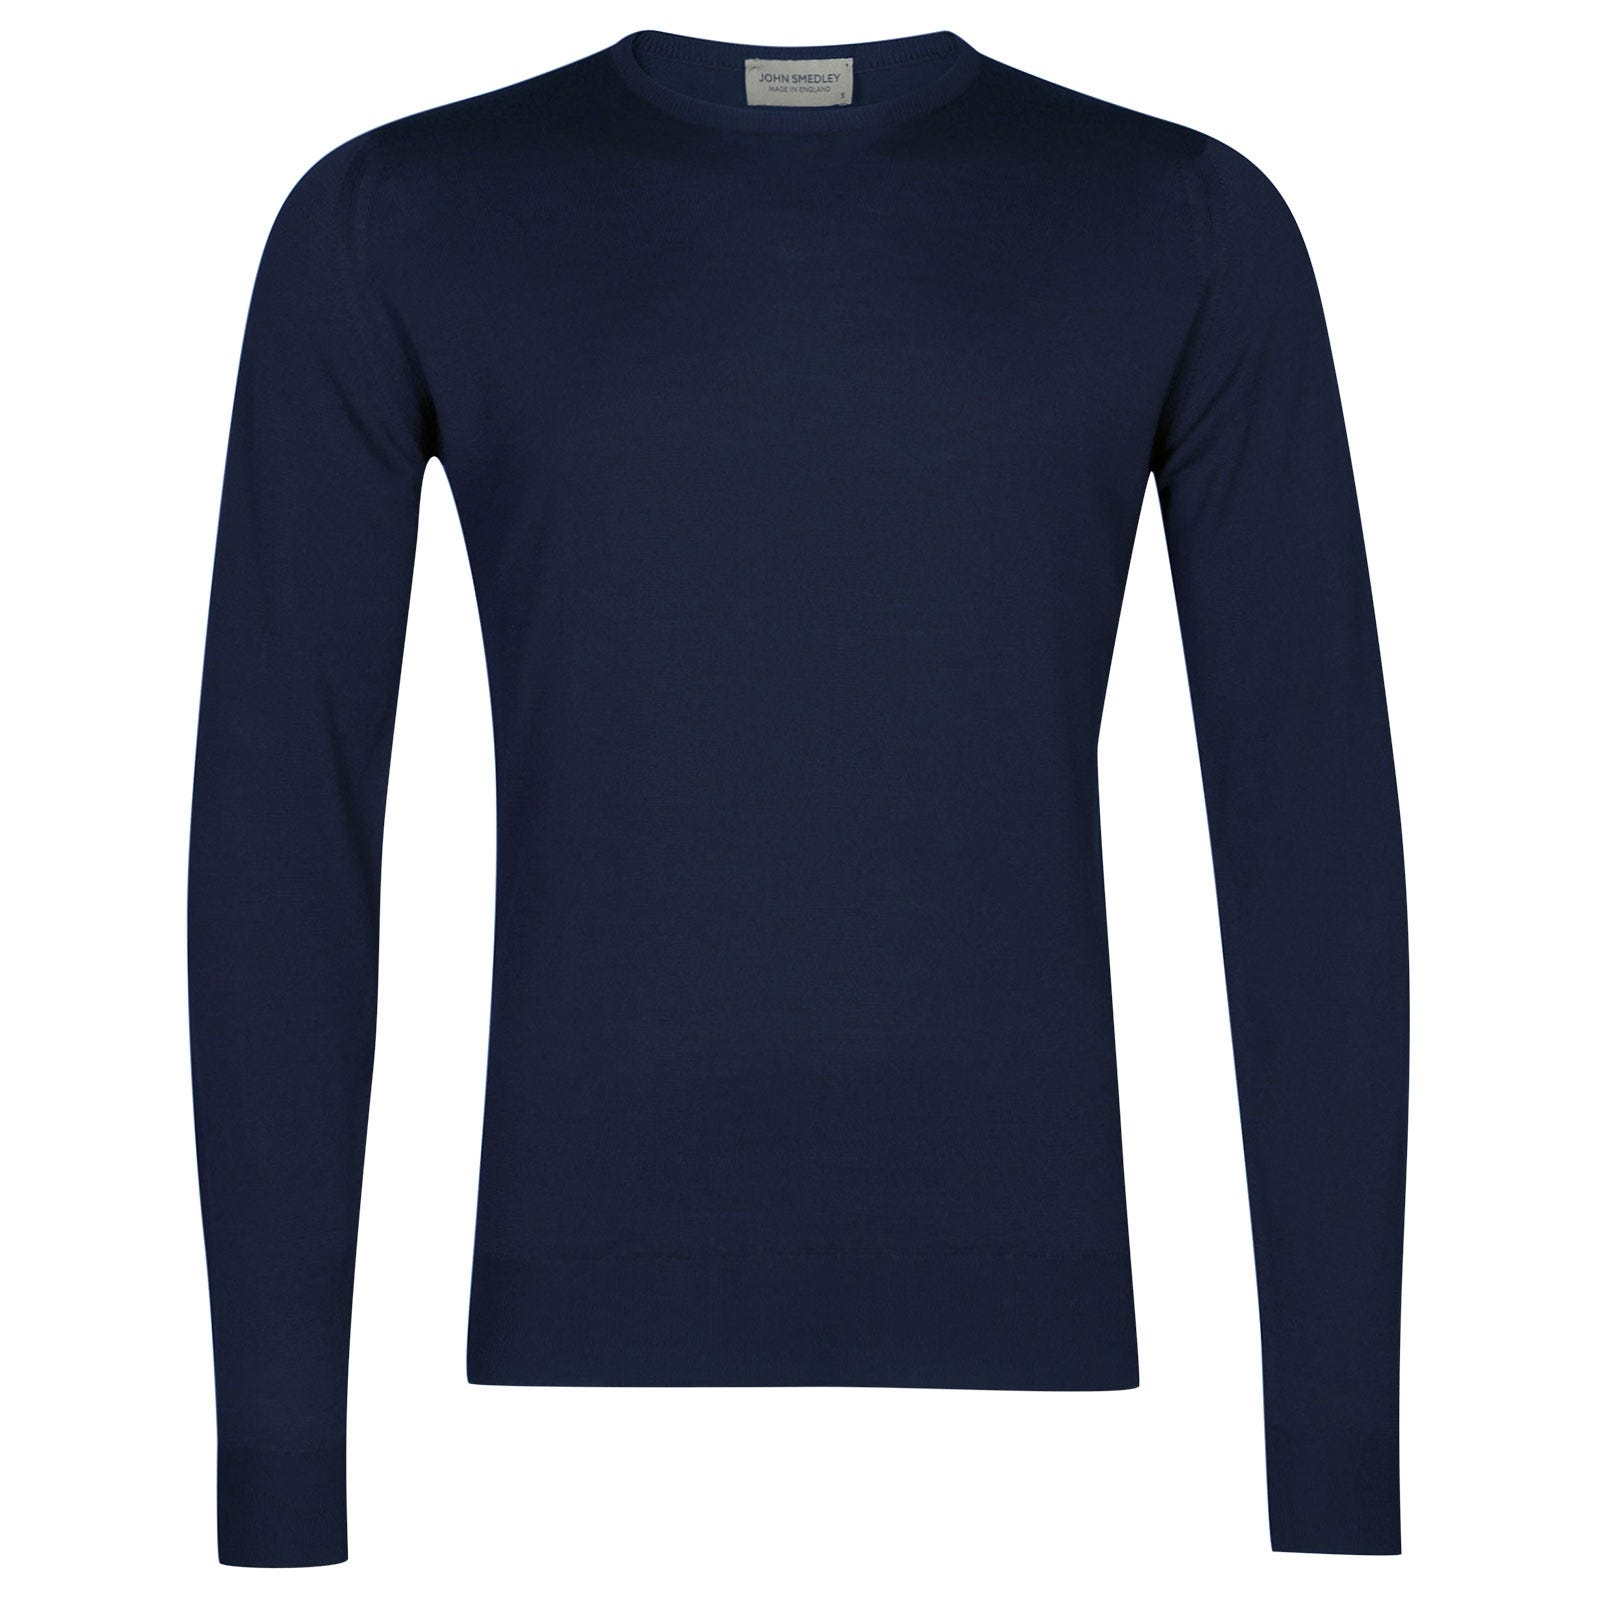 John Smedley Lundy Merino Wool Pullover in Magnetic Cobalt-S